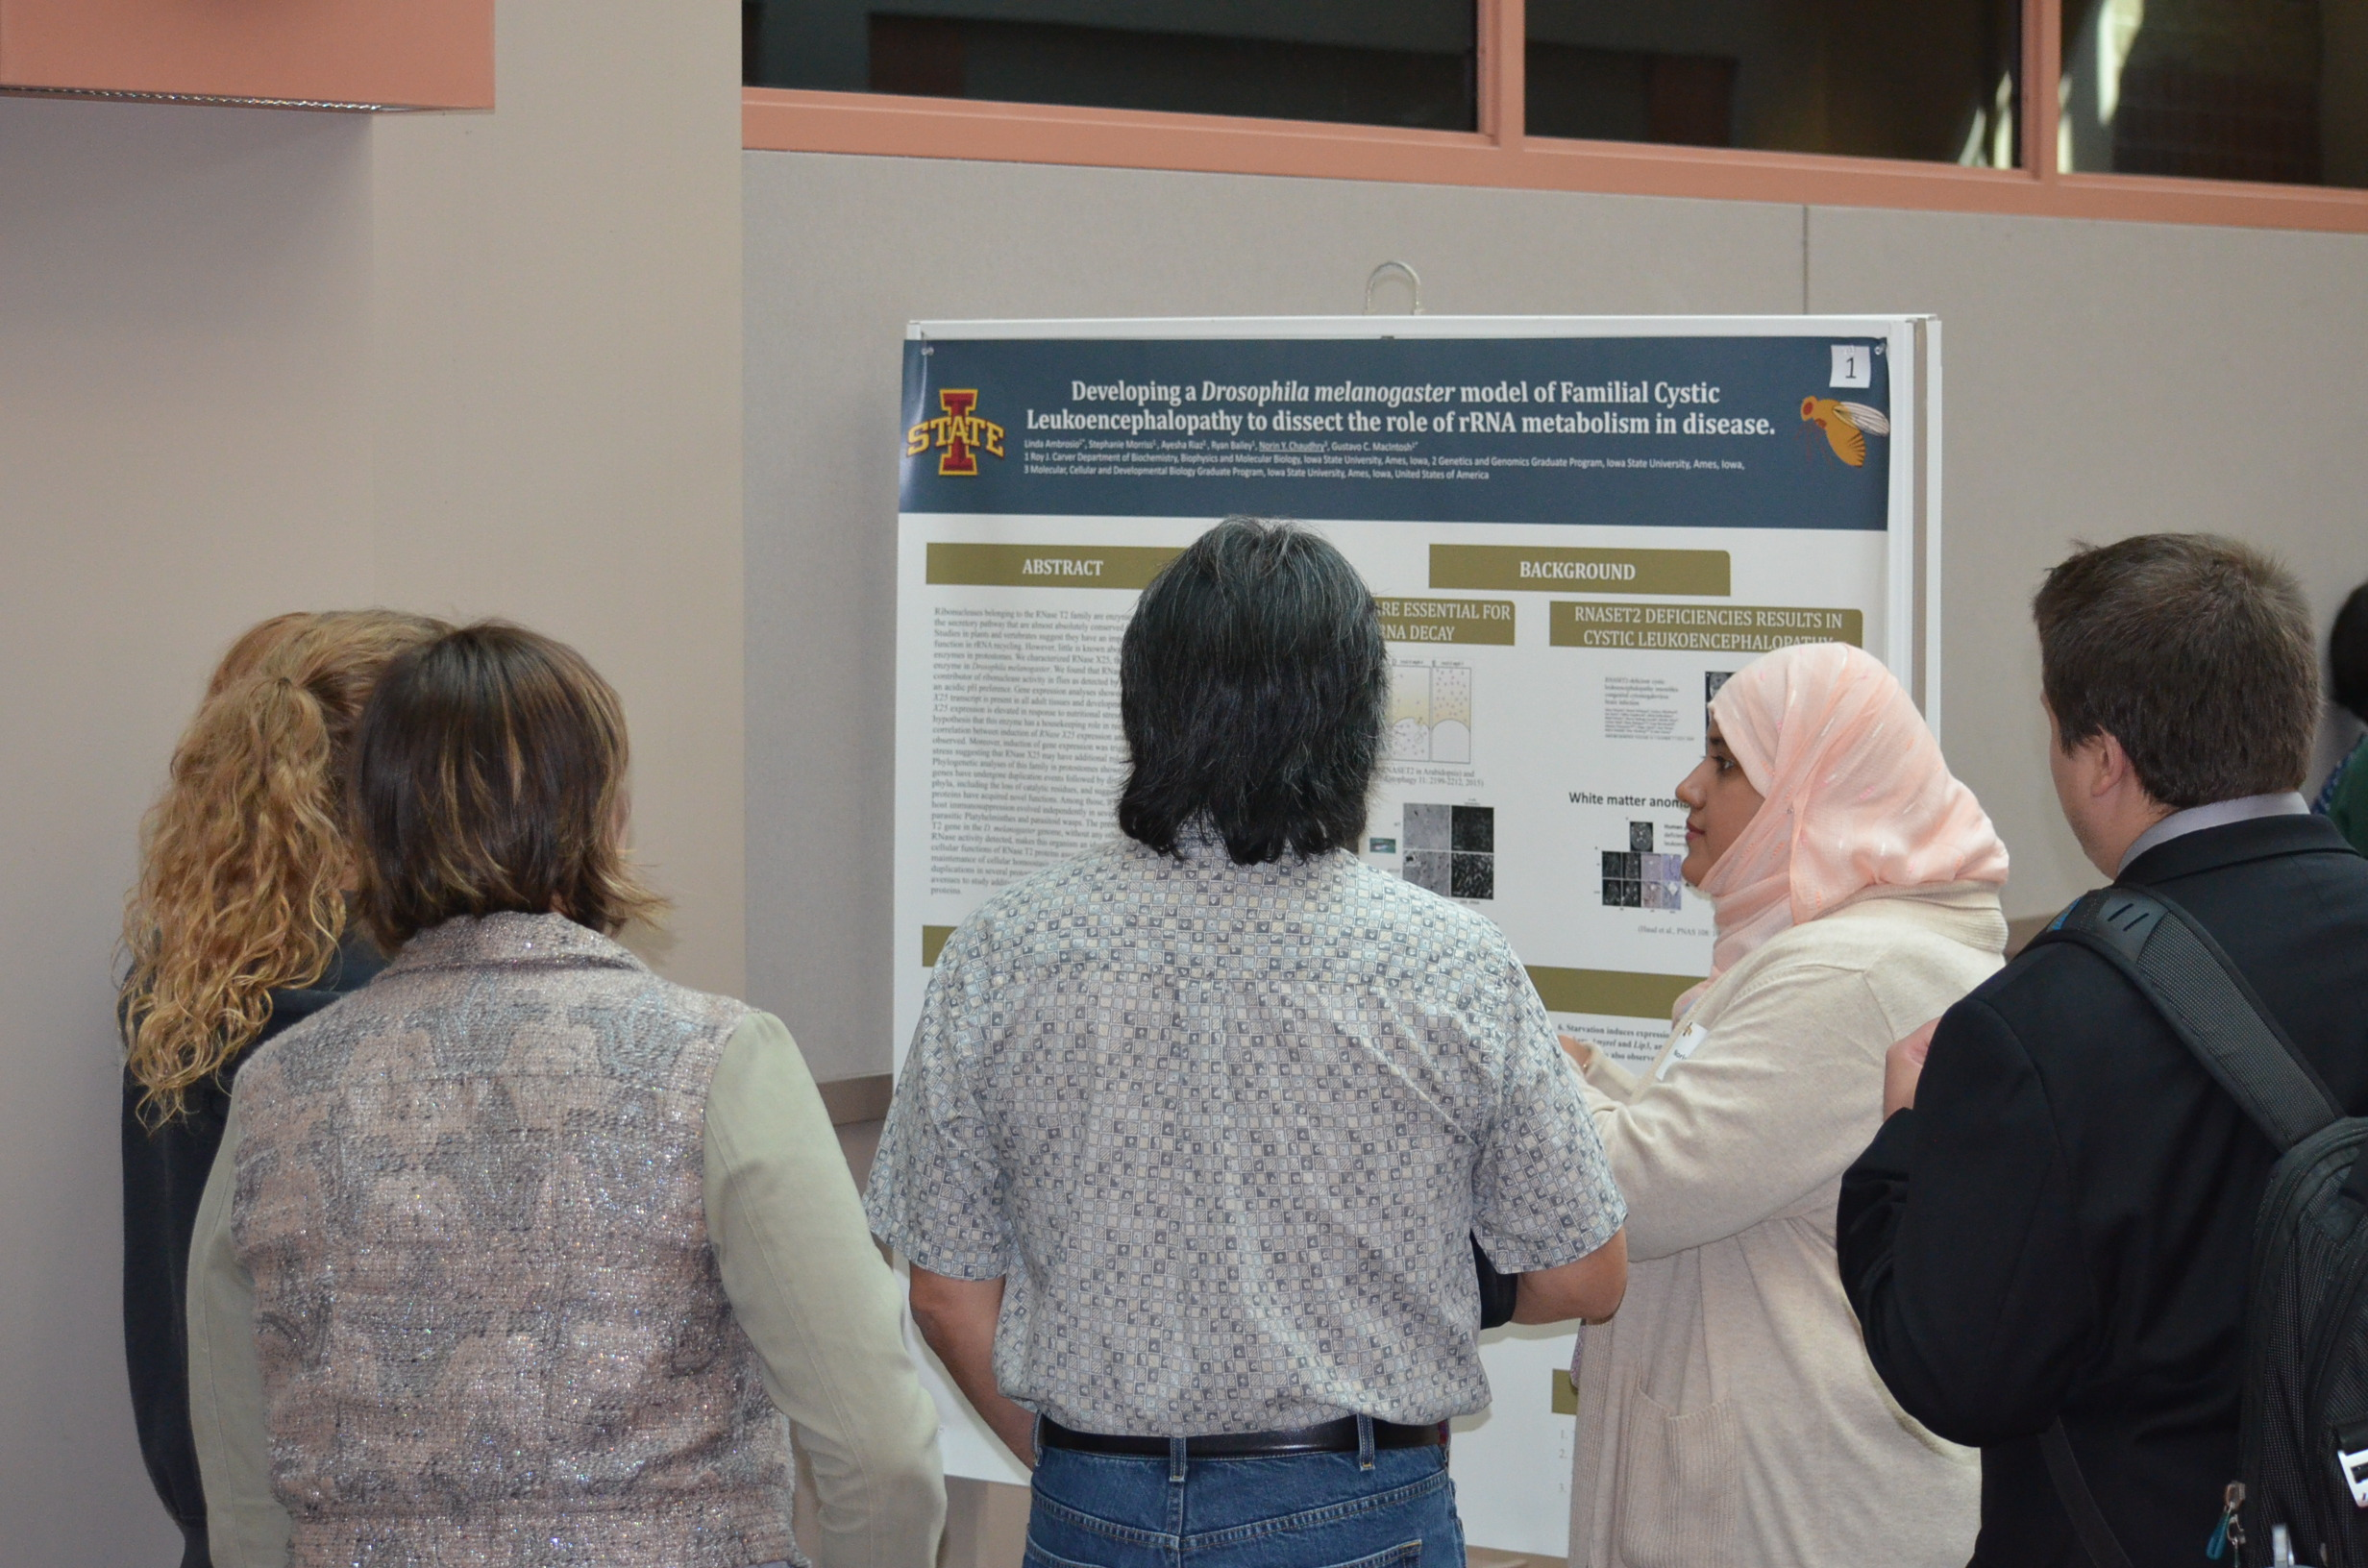 Norin Chaudhry, a graduate student in the interdepartmental Molecular, Cellular & Developmental Biology program, presents a poster on her research at Neuroscience Research Day.